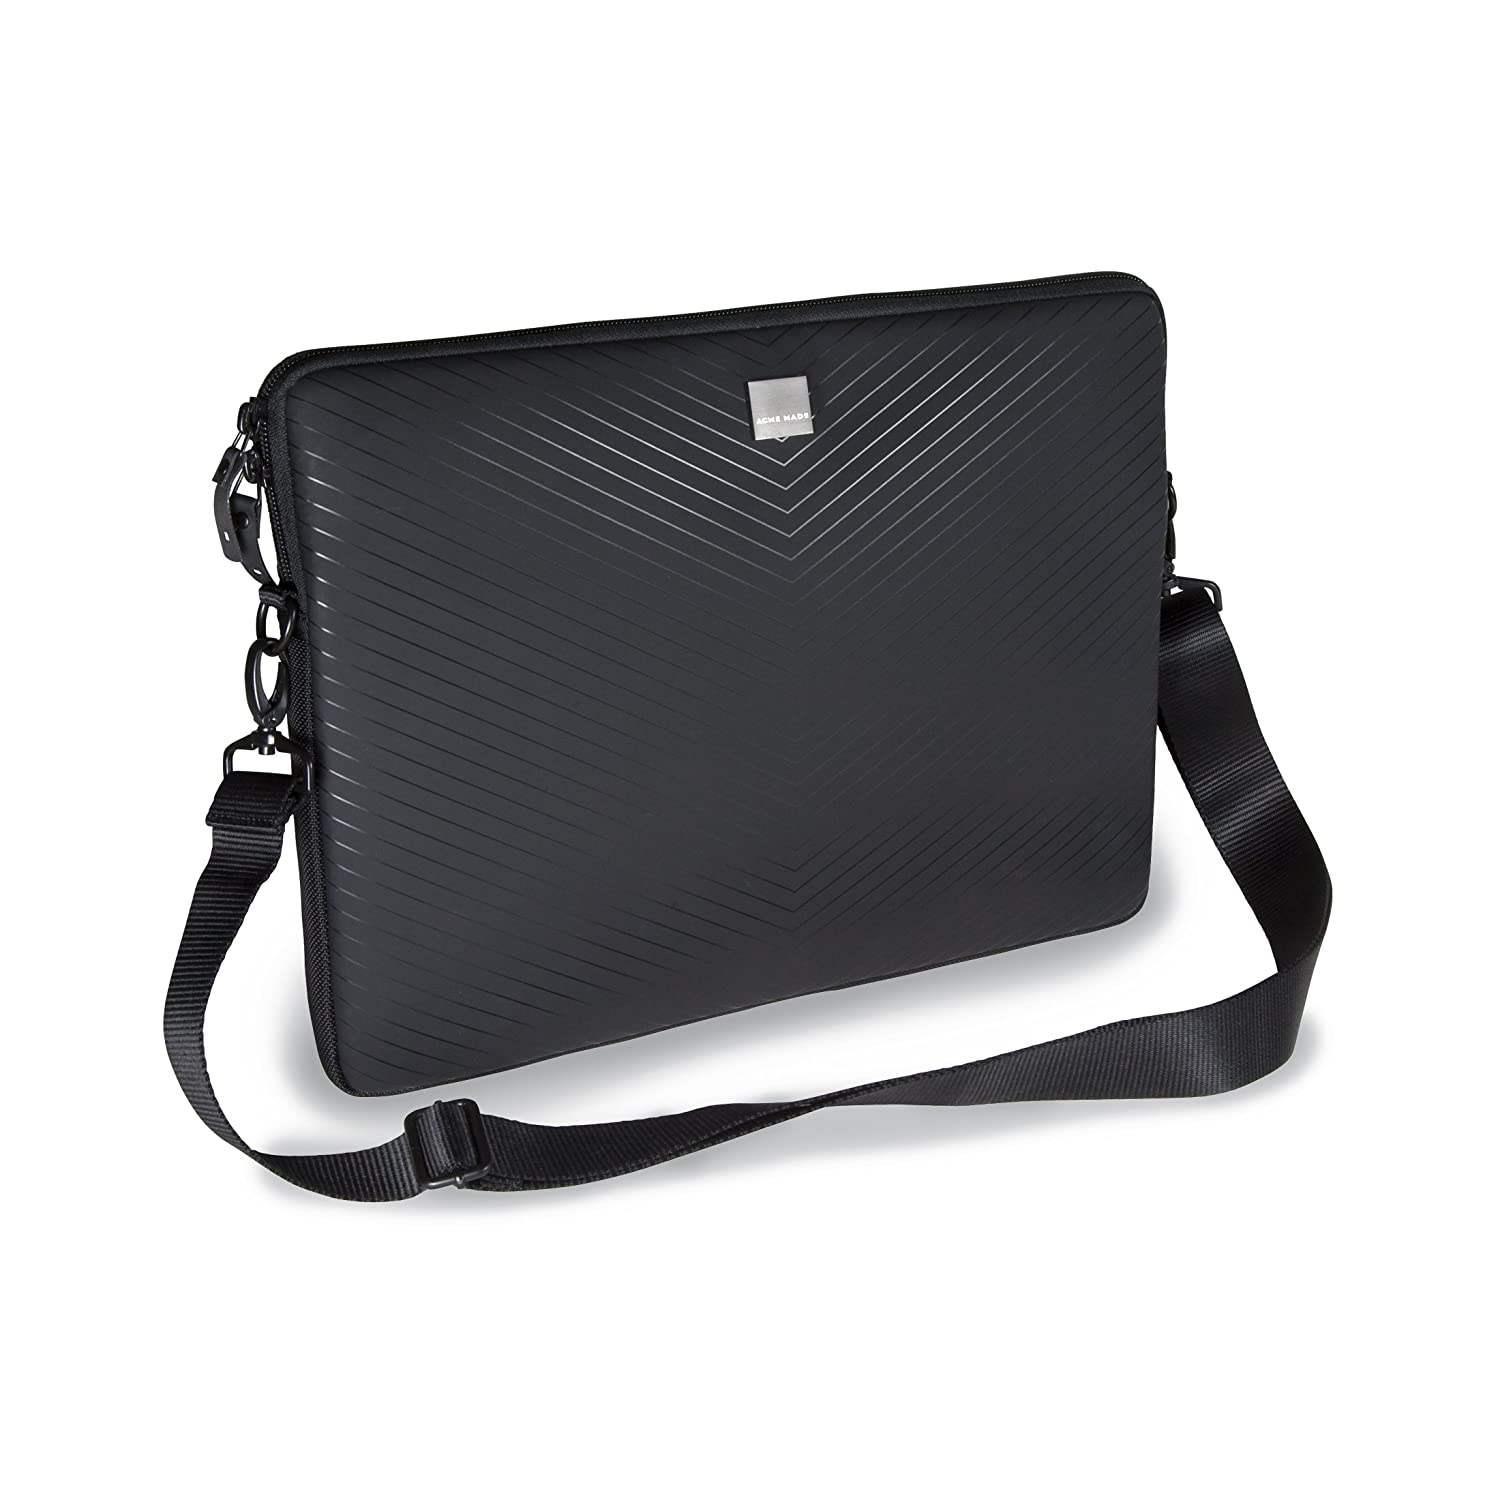 81bKKdDLF L. AA1500  luxe or less: laptop tote